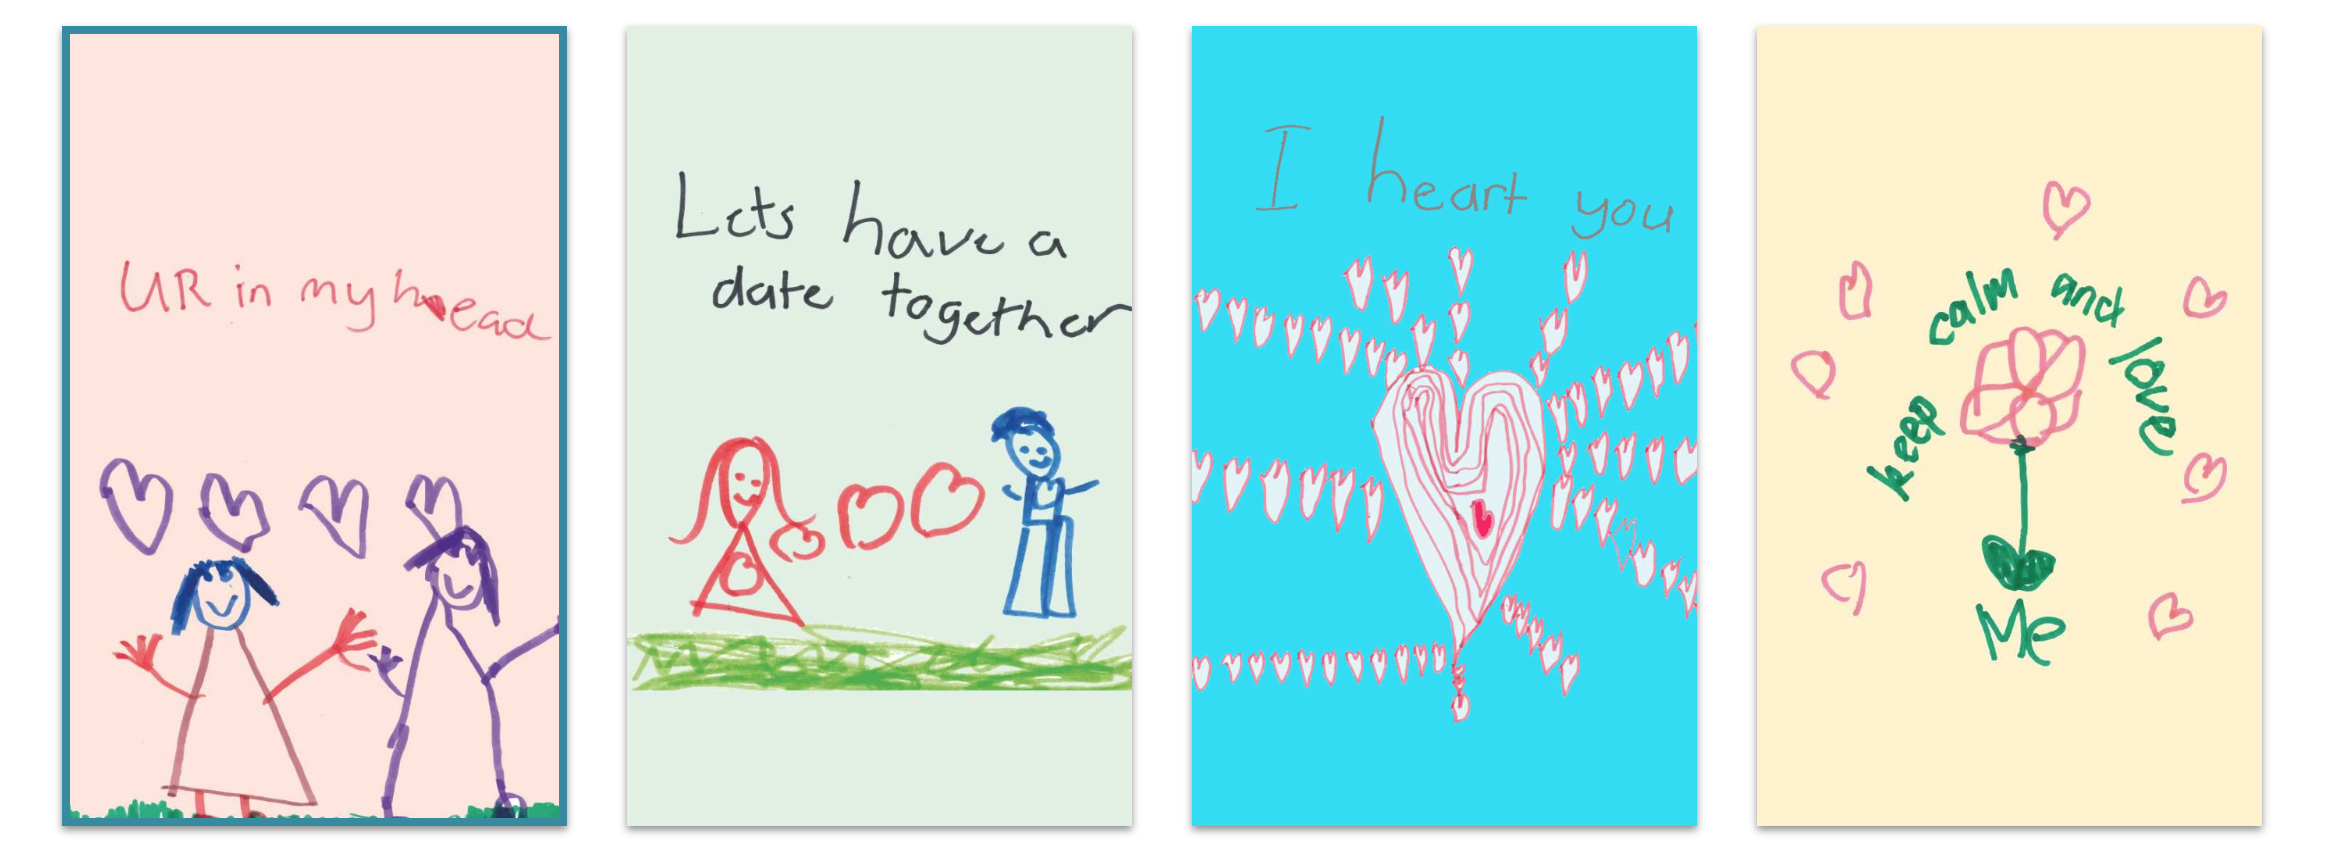 eHarmony Launches Valentine's Card Campaign in Australia